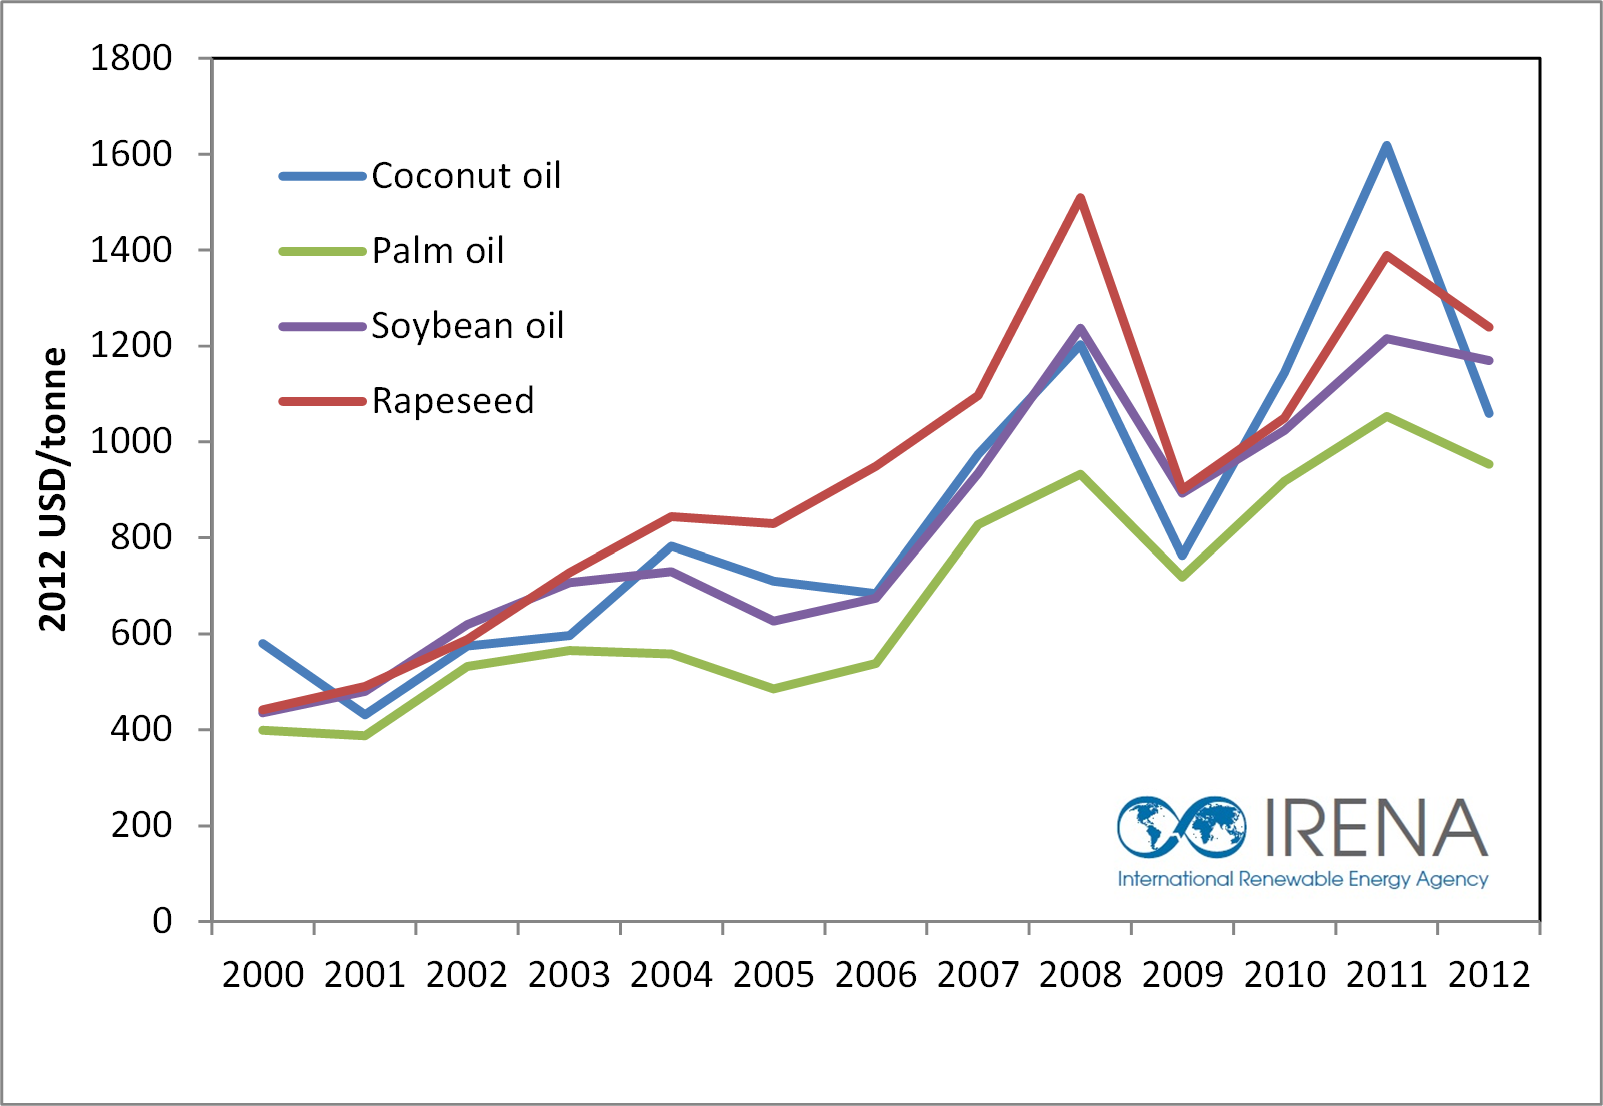 global-coconut-palm-rapseed-and-soybean-oil-prices-2000-to-2012